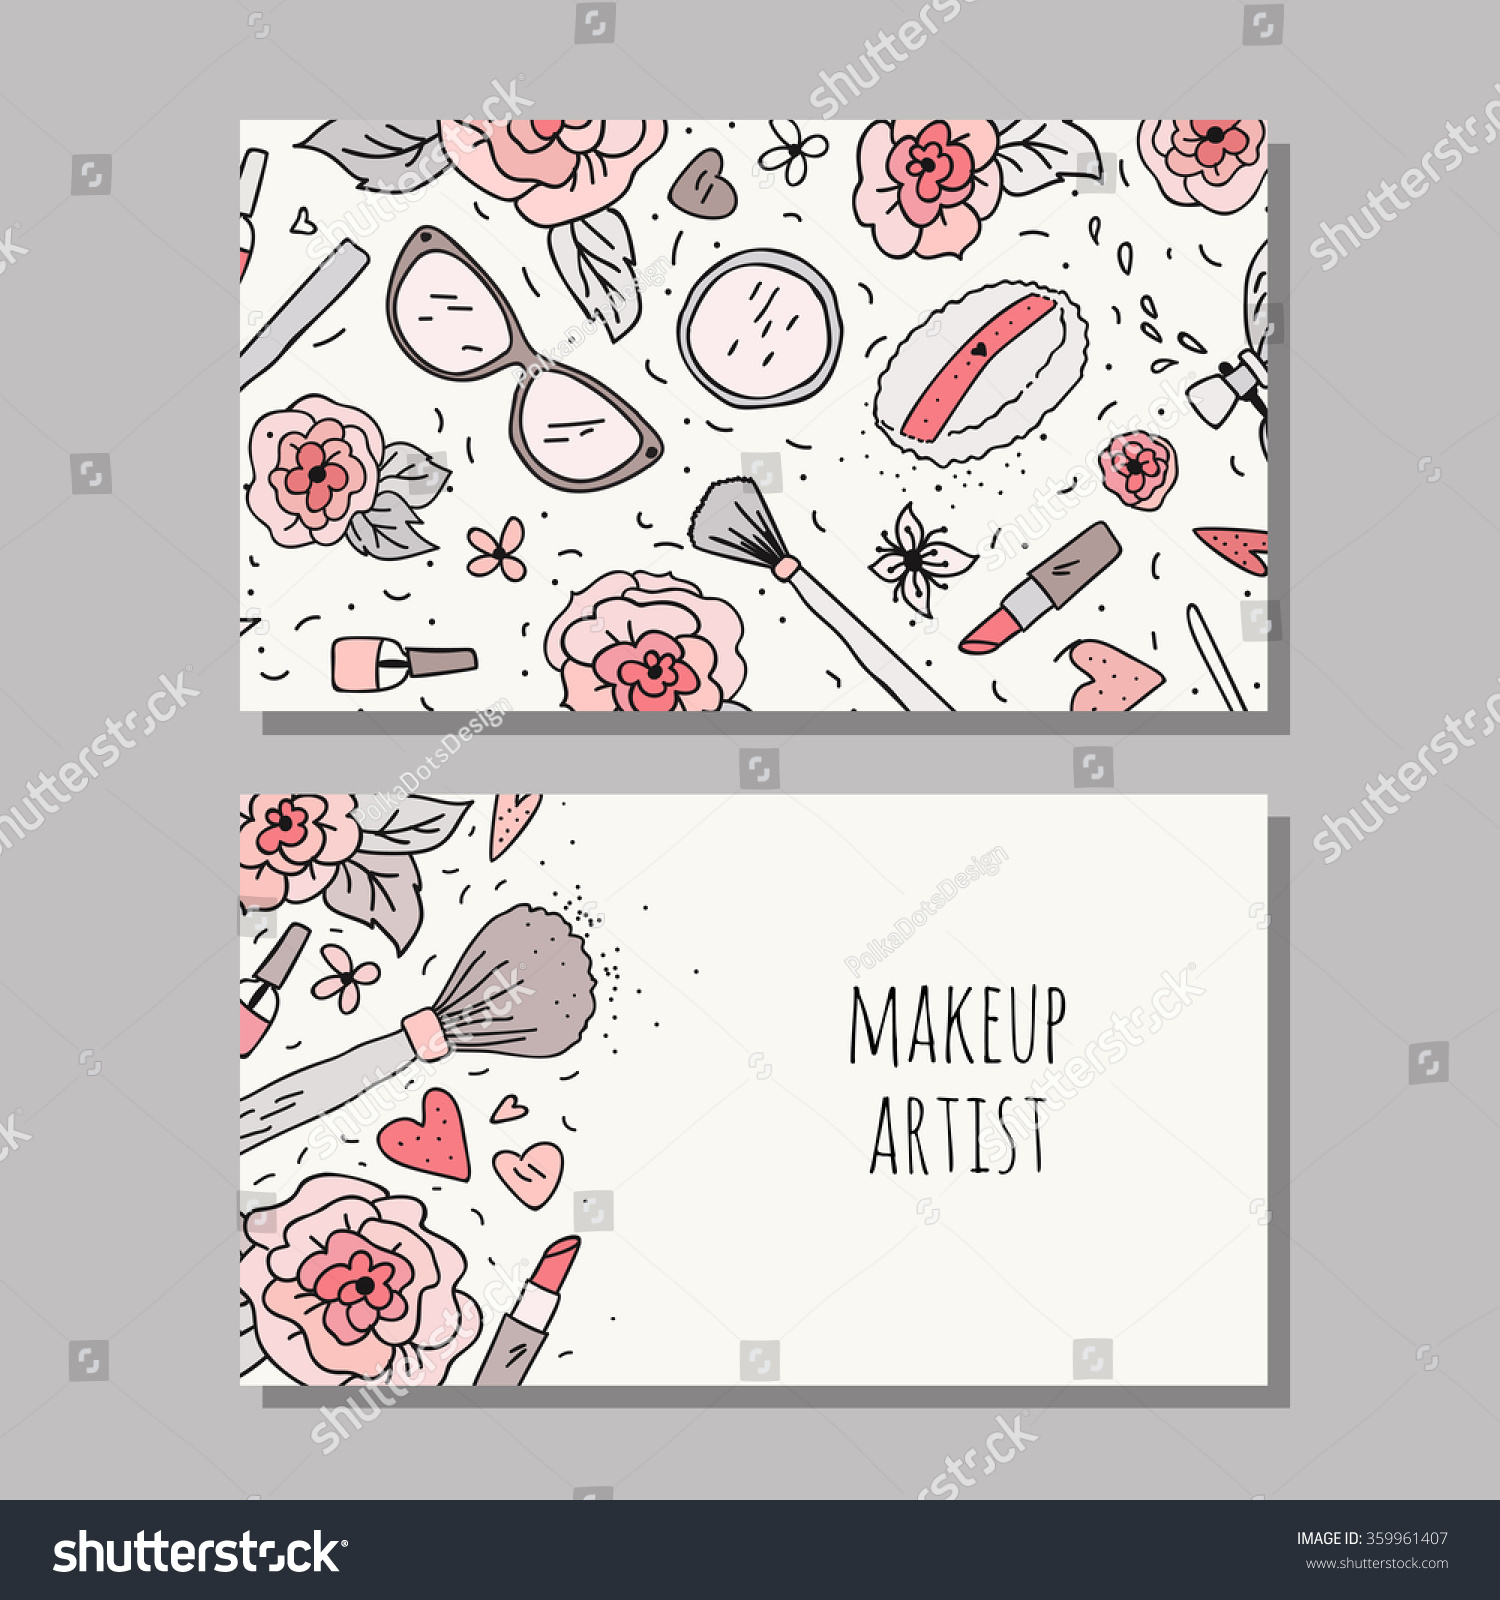 Business card template makeup artist vector stock vector 359961407 business card template for a makeup artist vector layout with hand drawn flowers and makeup alramifo Image collections